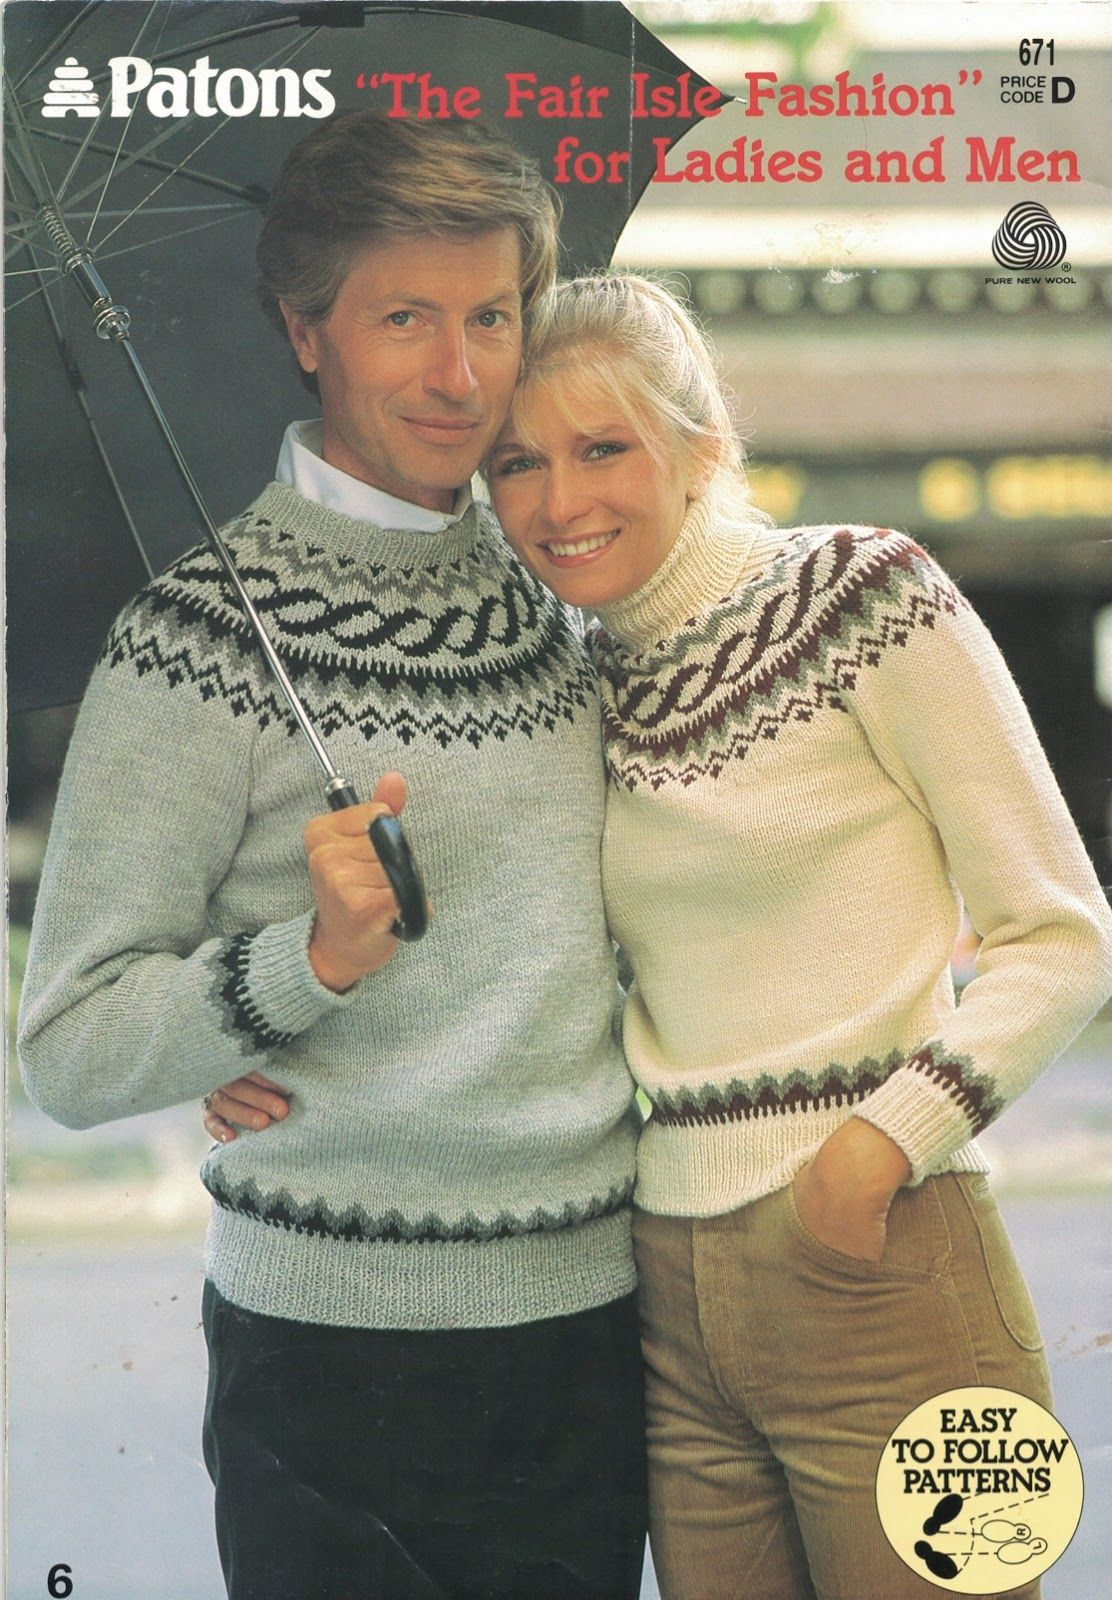 The vintage pattern files free 1980s knitting pattern patons no the vintage pattern files free 1980s knitting pattern patons no 671 fair isle bankloansurffo Gallery